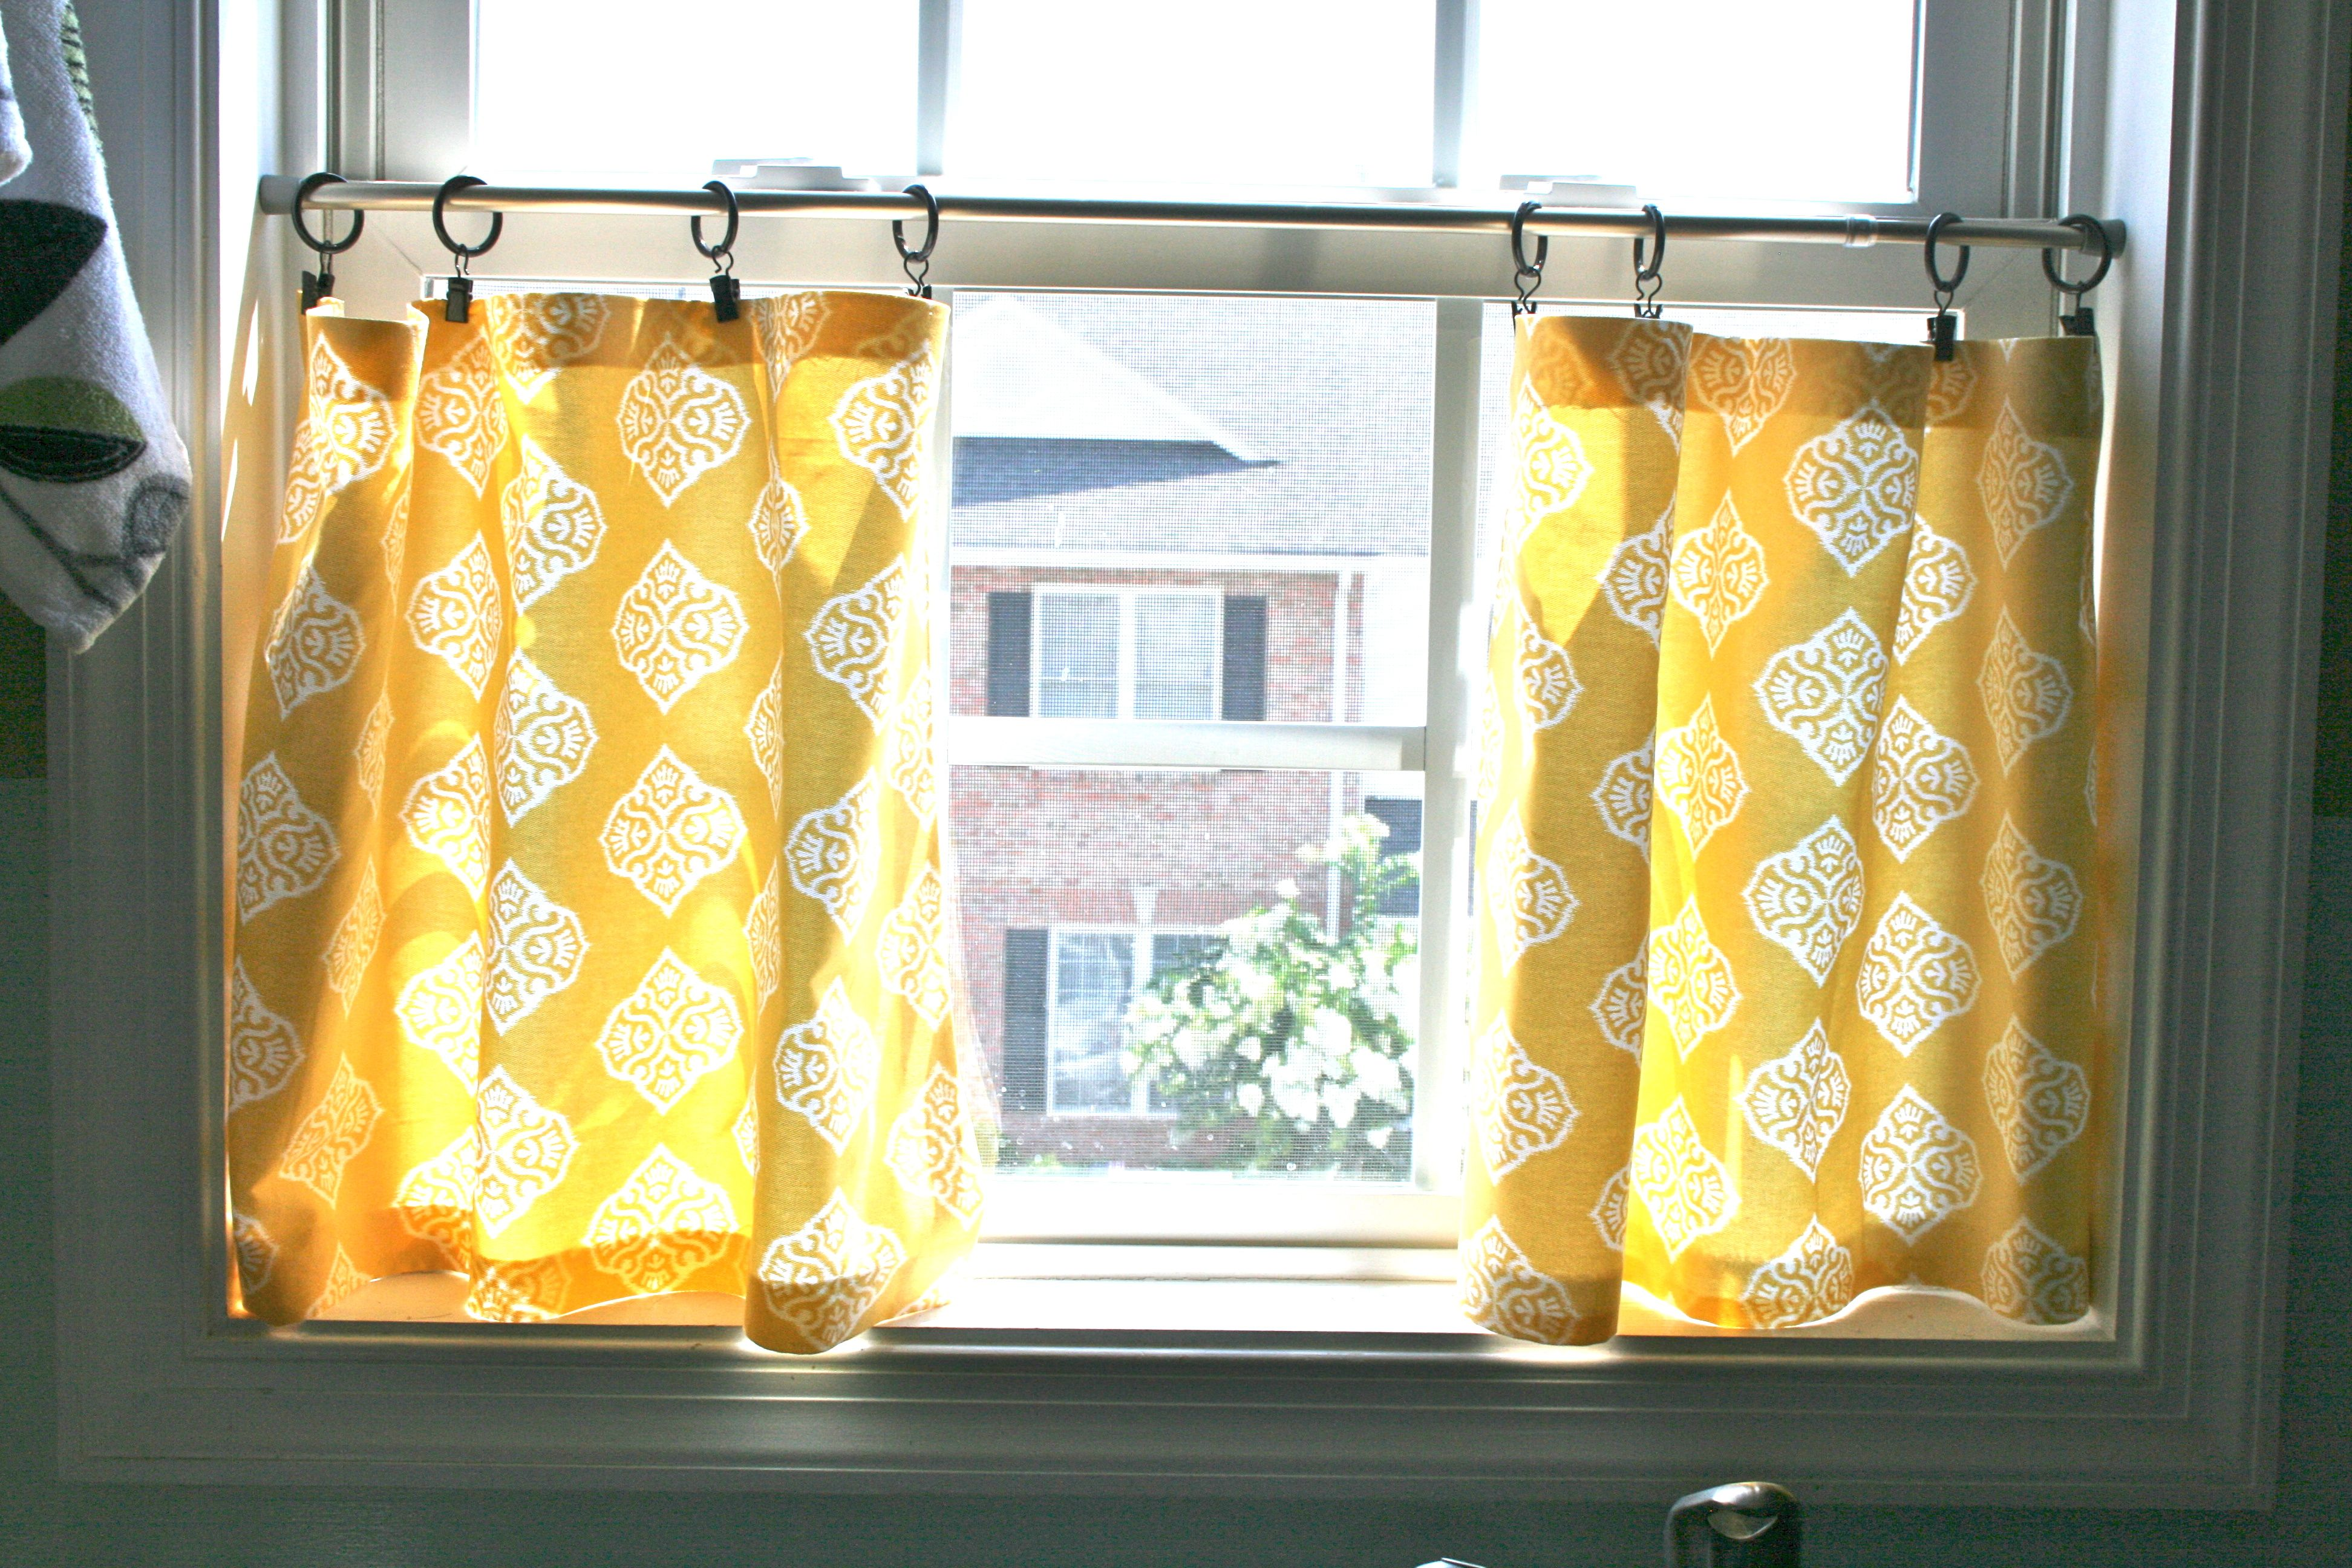 For Kitchen Curtains Curtain For Kitchen Kitchen Curtains 15 Modern Kitchen Curtains